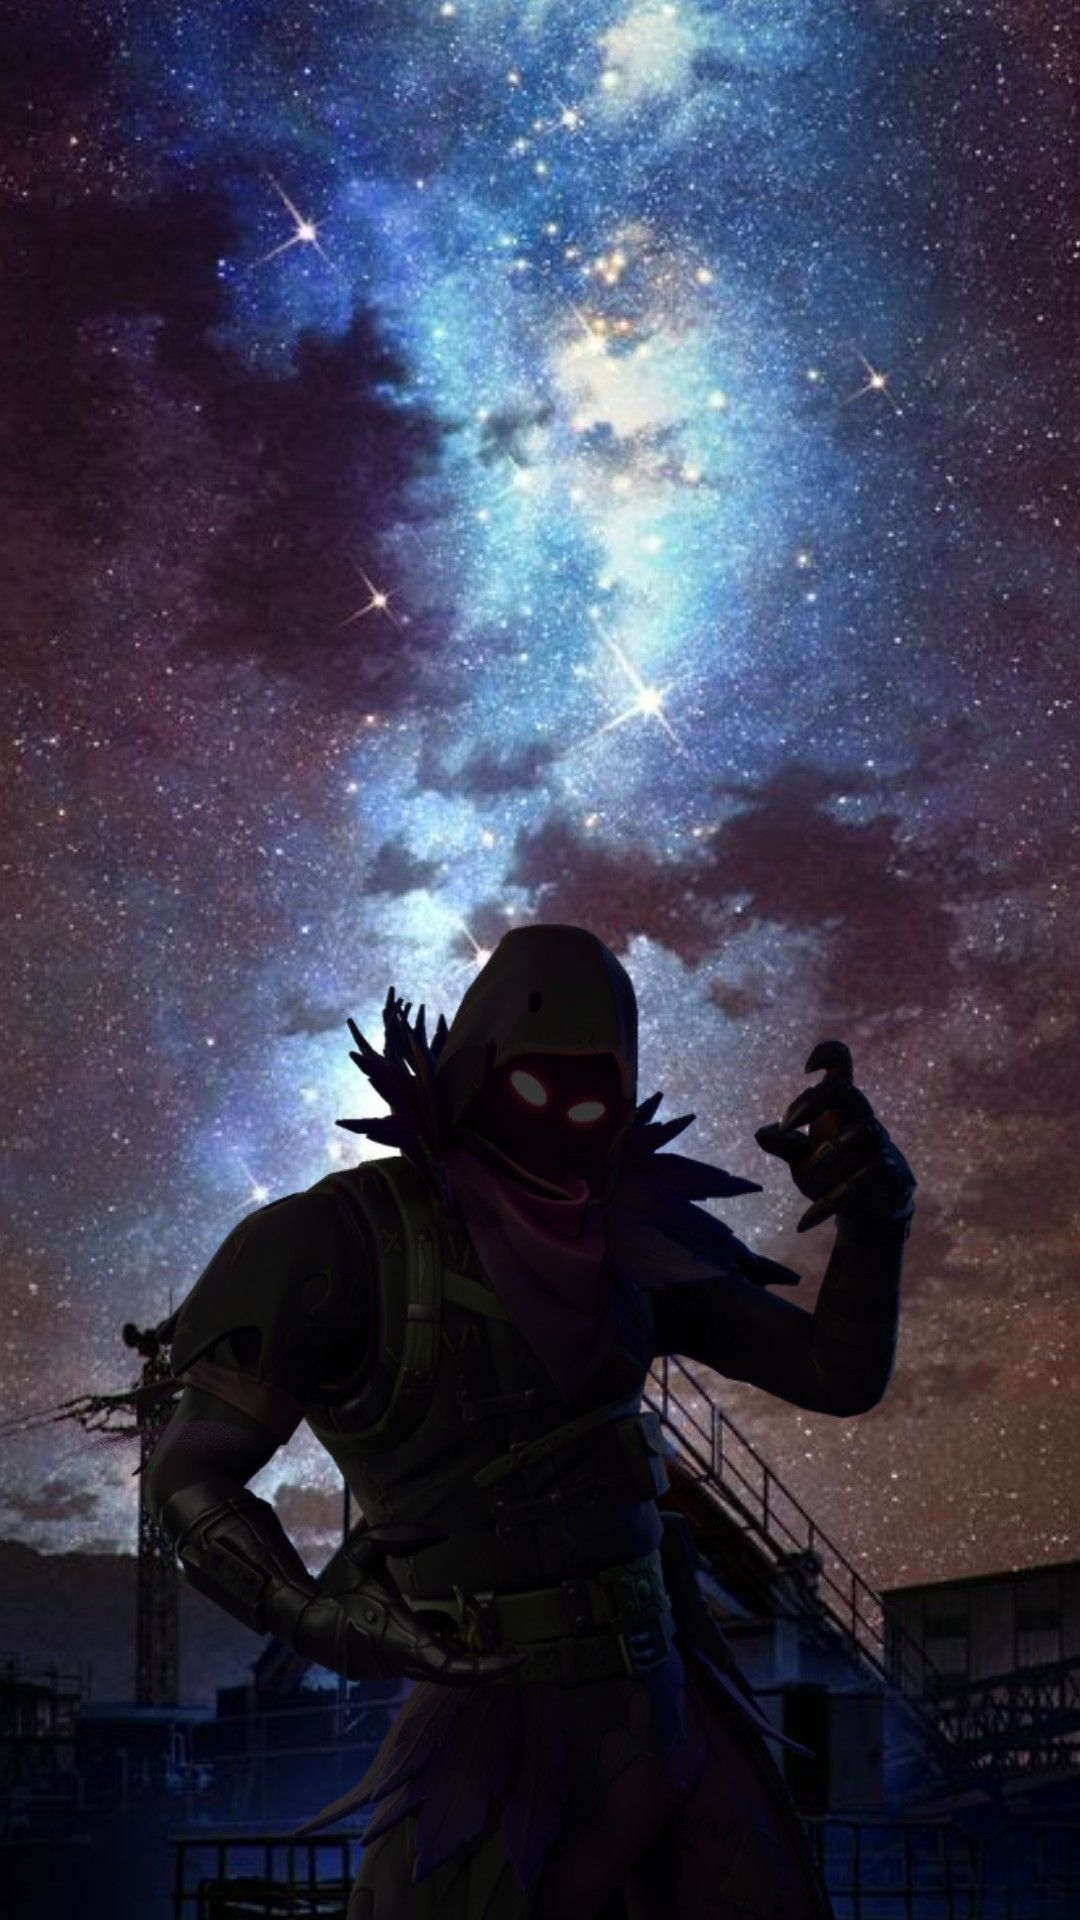 Fortnite Raven Gaming Pinterest Raven Wallpaper And Gaming